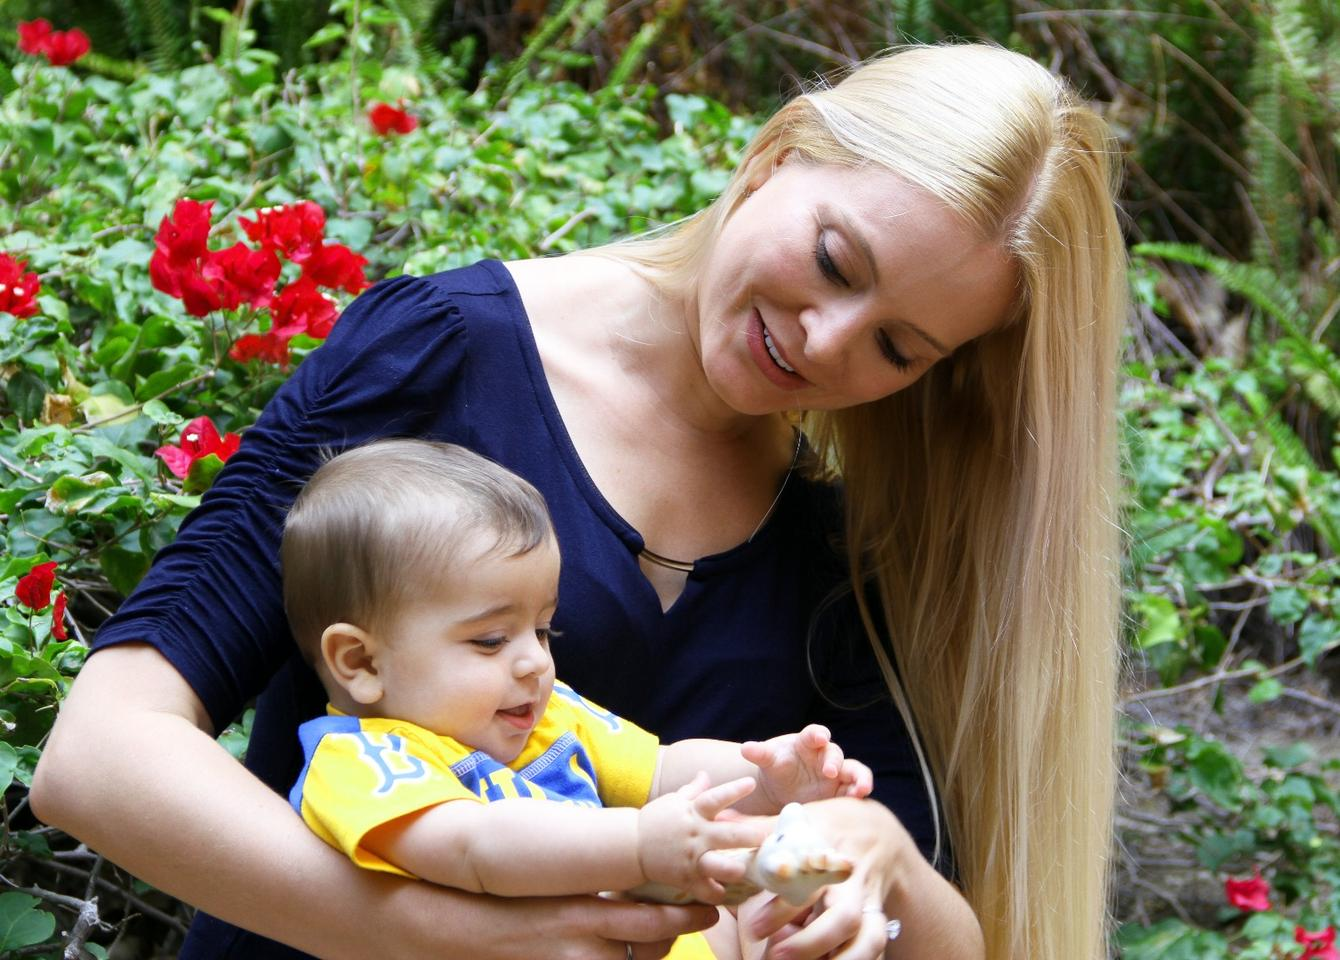 Ariana Anderson, PhD, is an assistant professor in residence at UCLA Semel Institute and a mother of four, who used her own experiences as a mother to create the ChatterBaby app